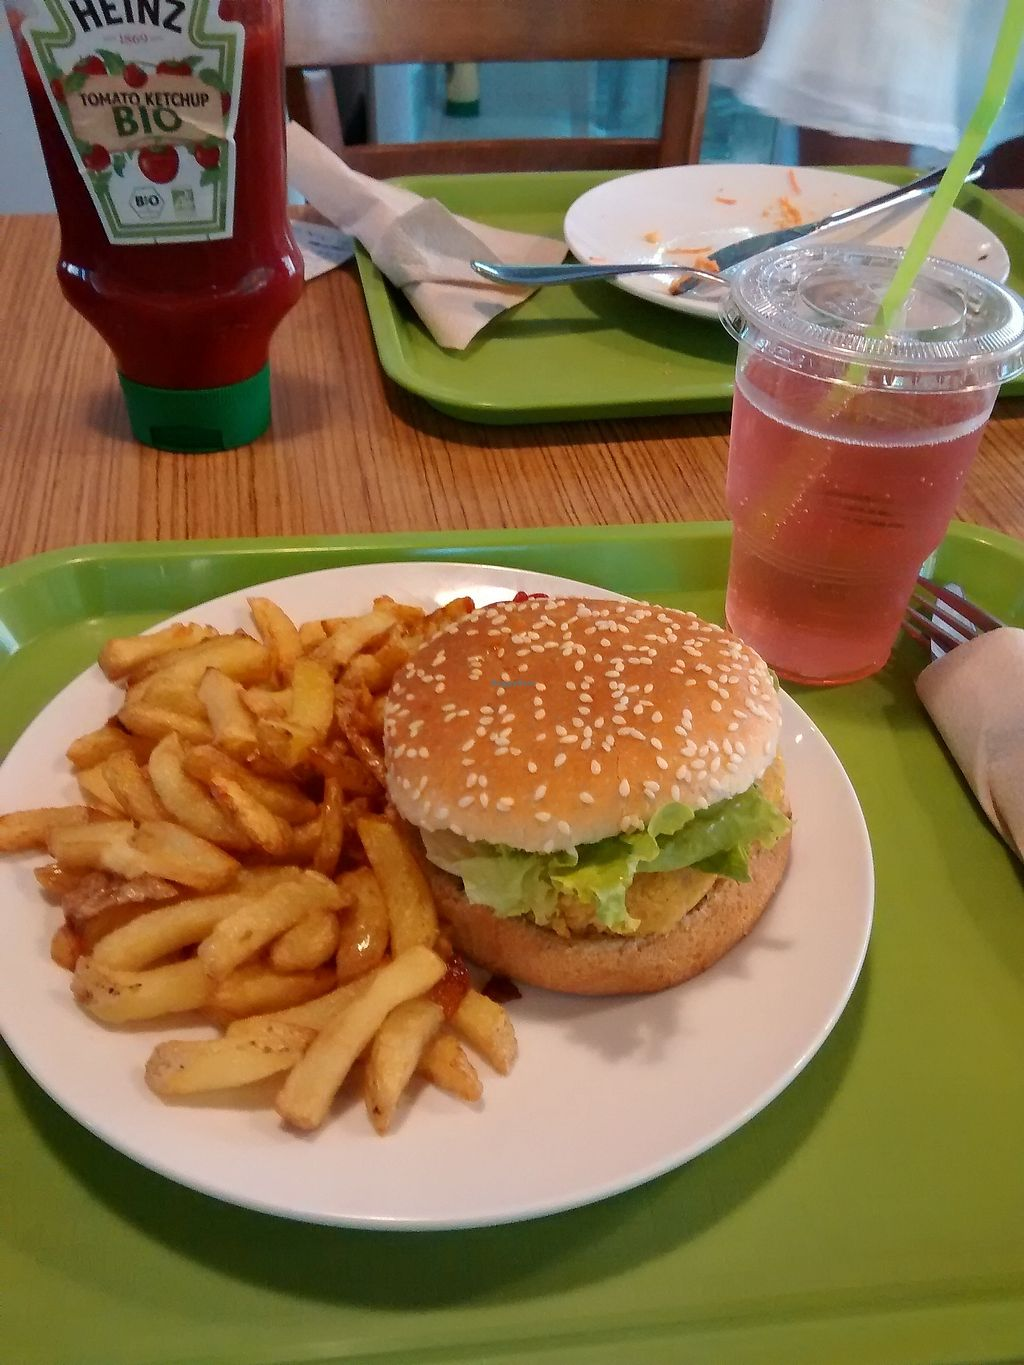 """Photo of Délices Veggies  by <a href=""""/members/profile/Thor"""">Thor</a> <br/>""""Menu Veggie"""" with french fries and a falafel burger <br/> September 18, 2017  - <a href='/contact/abuse/image/100220/305759'>Report</a>"""